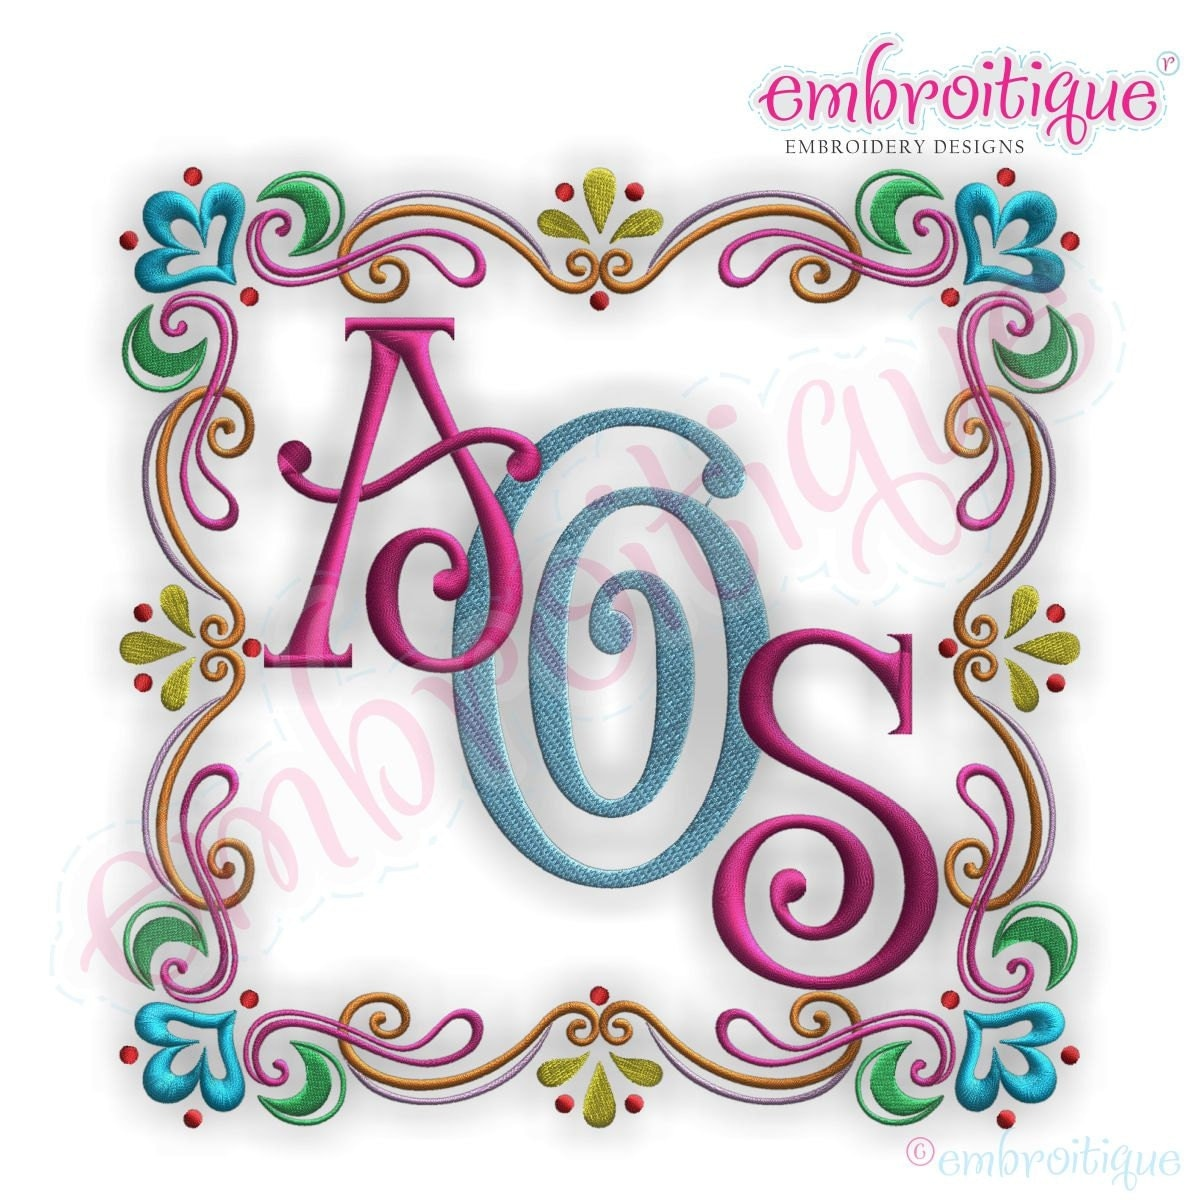 Font frames set of our best selling machine embroidery